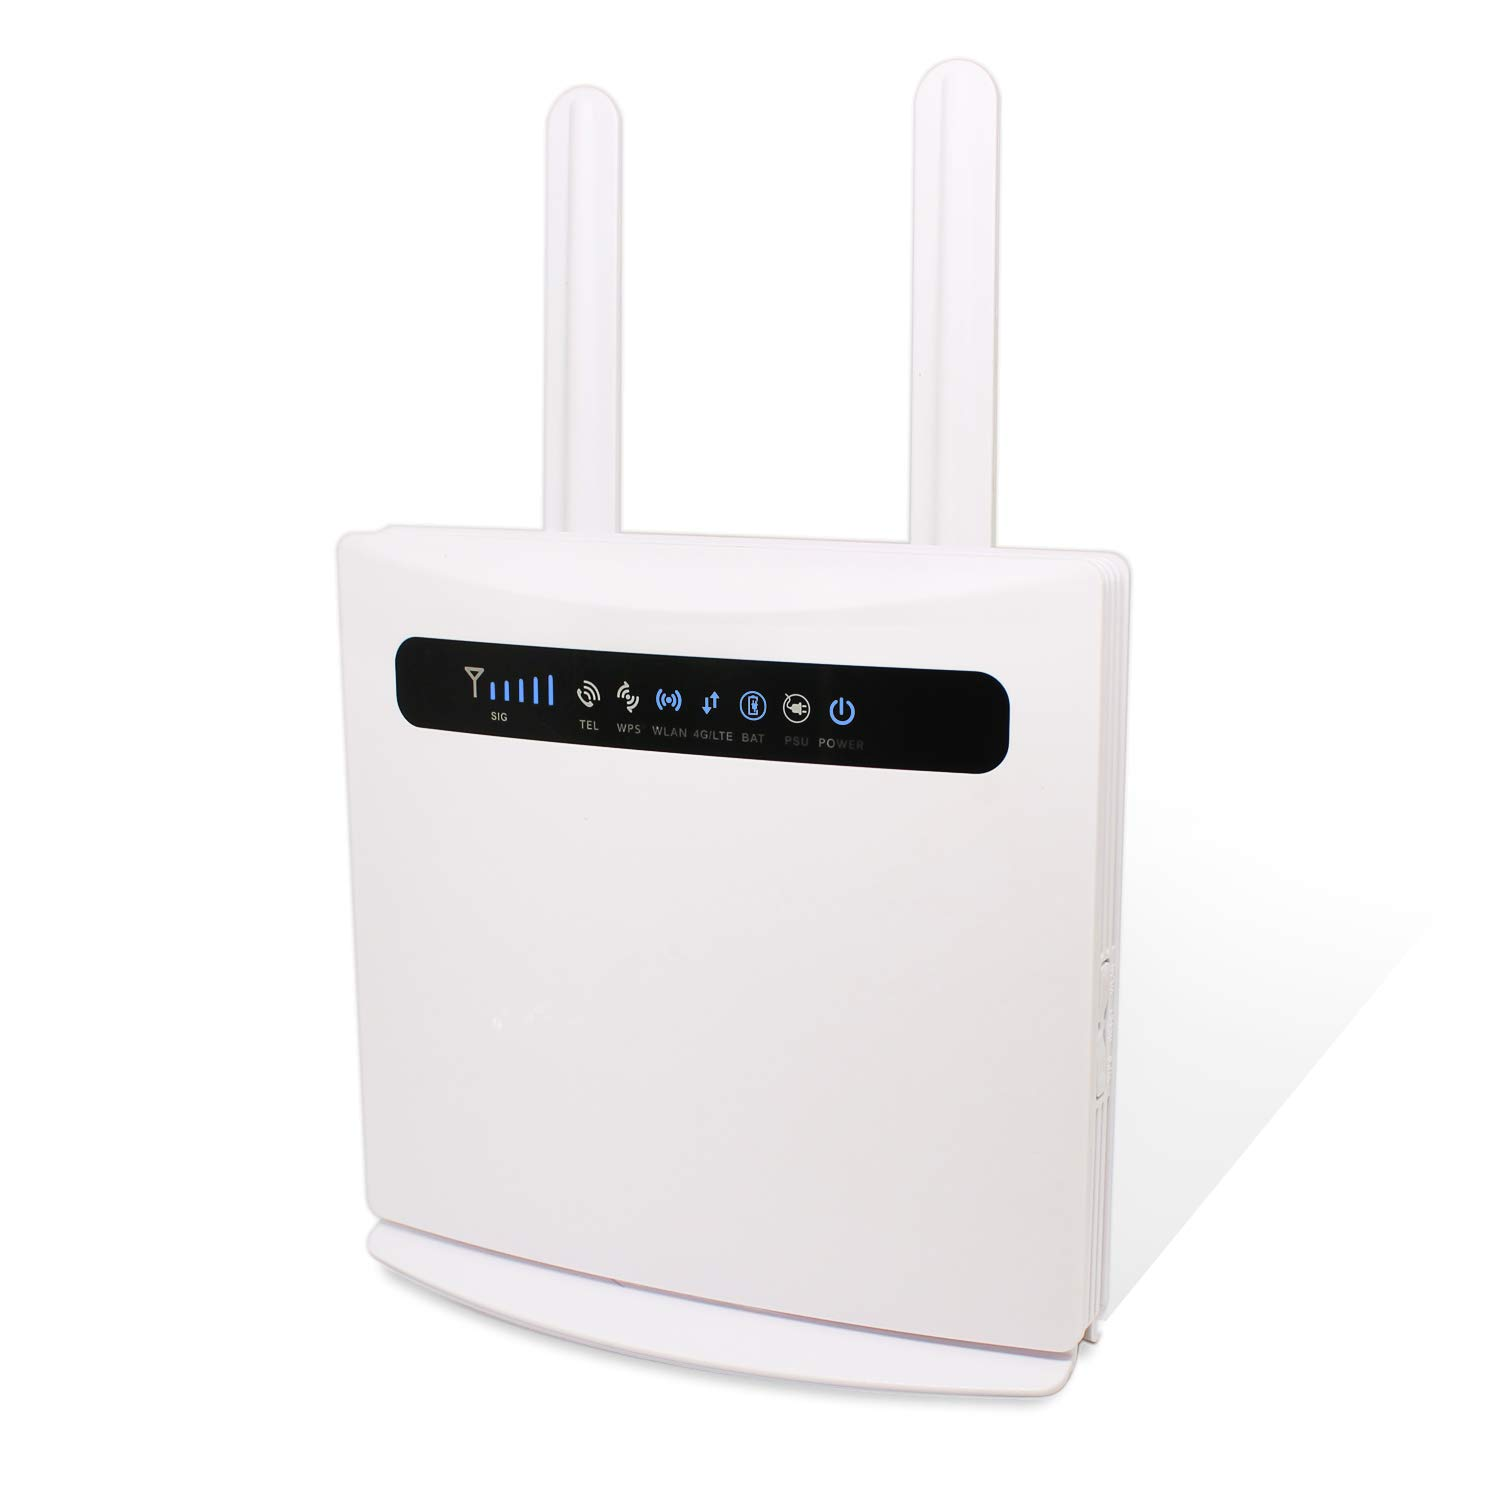 Yeacomm Lte Cpe Router Tdd Fdd 3g 4g Wireless Router Amazon In Electronics